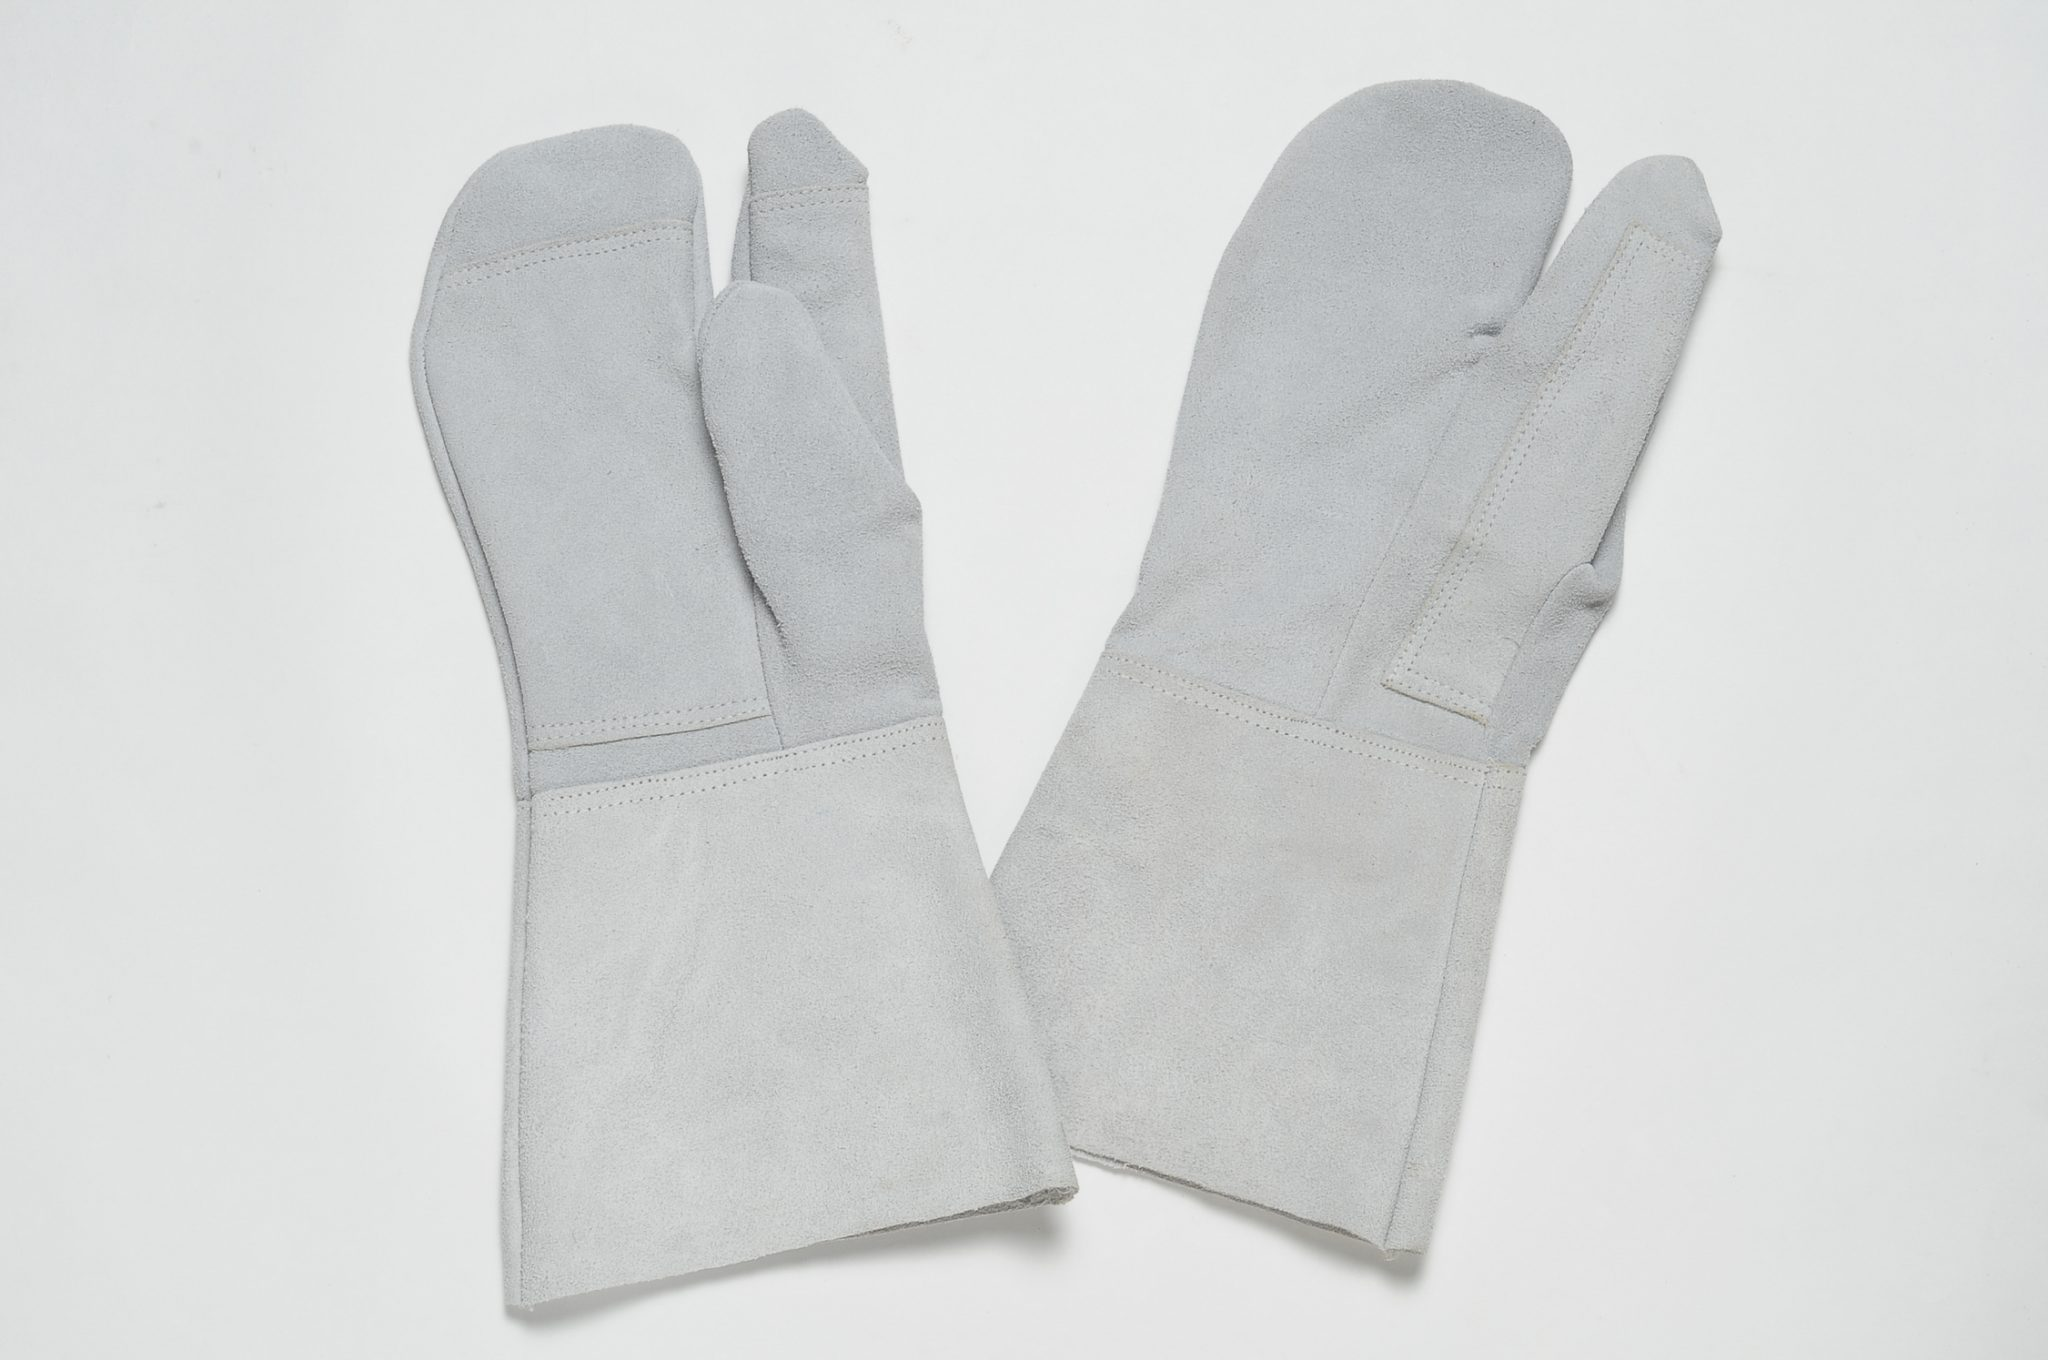 ALL LEATHER OVEN GLOVES